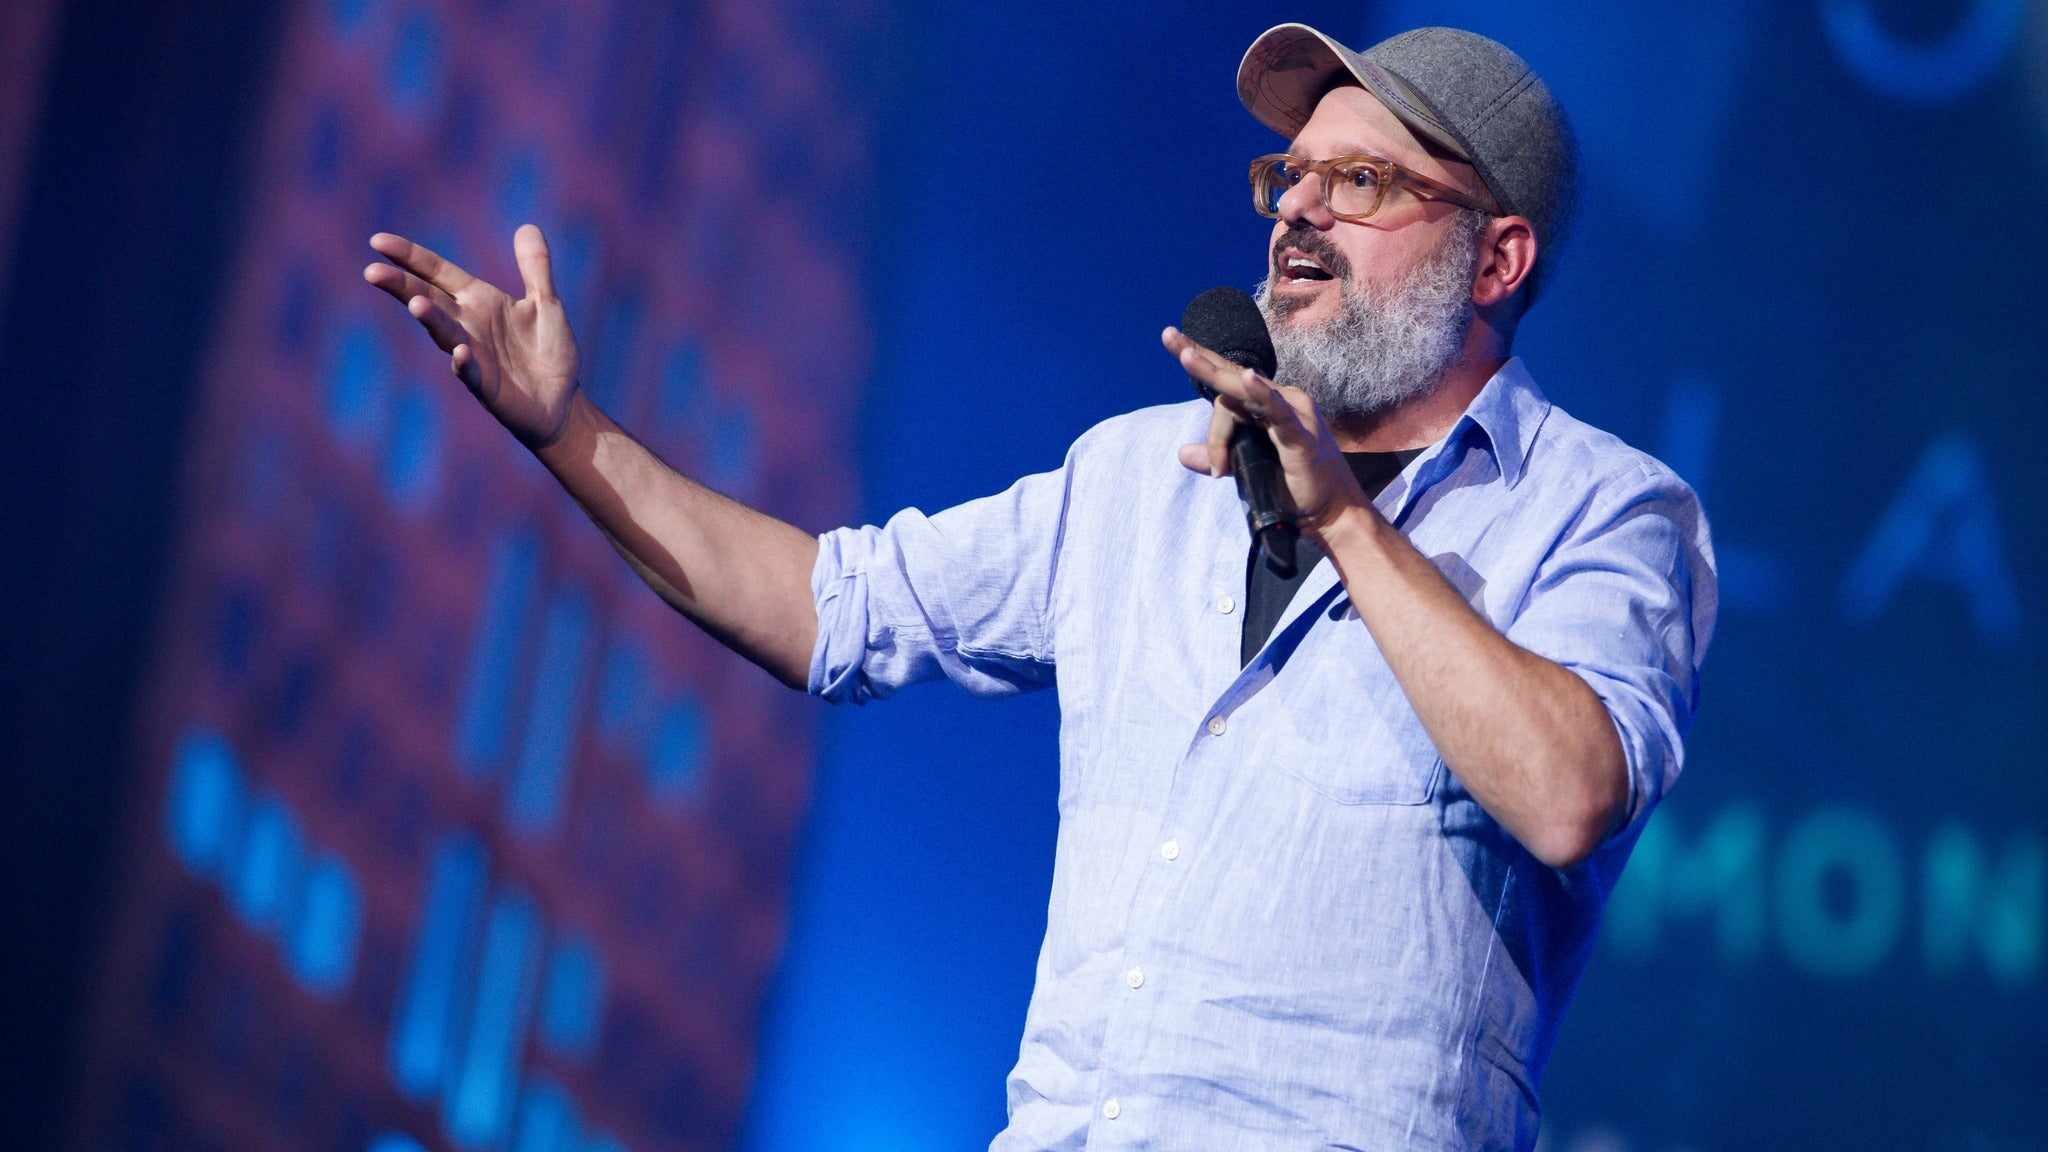 David Cross at House of Independents - Asbury Park, NJ 07712